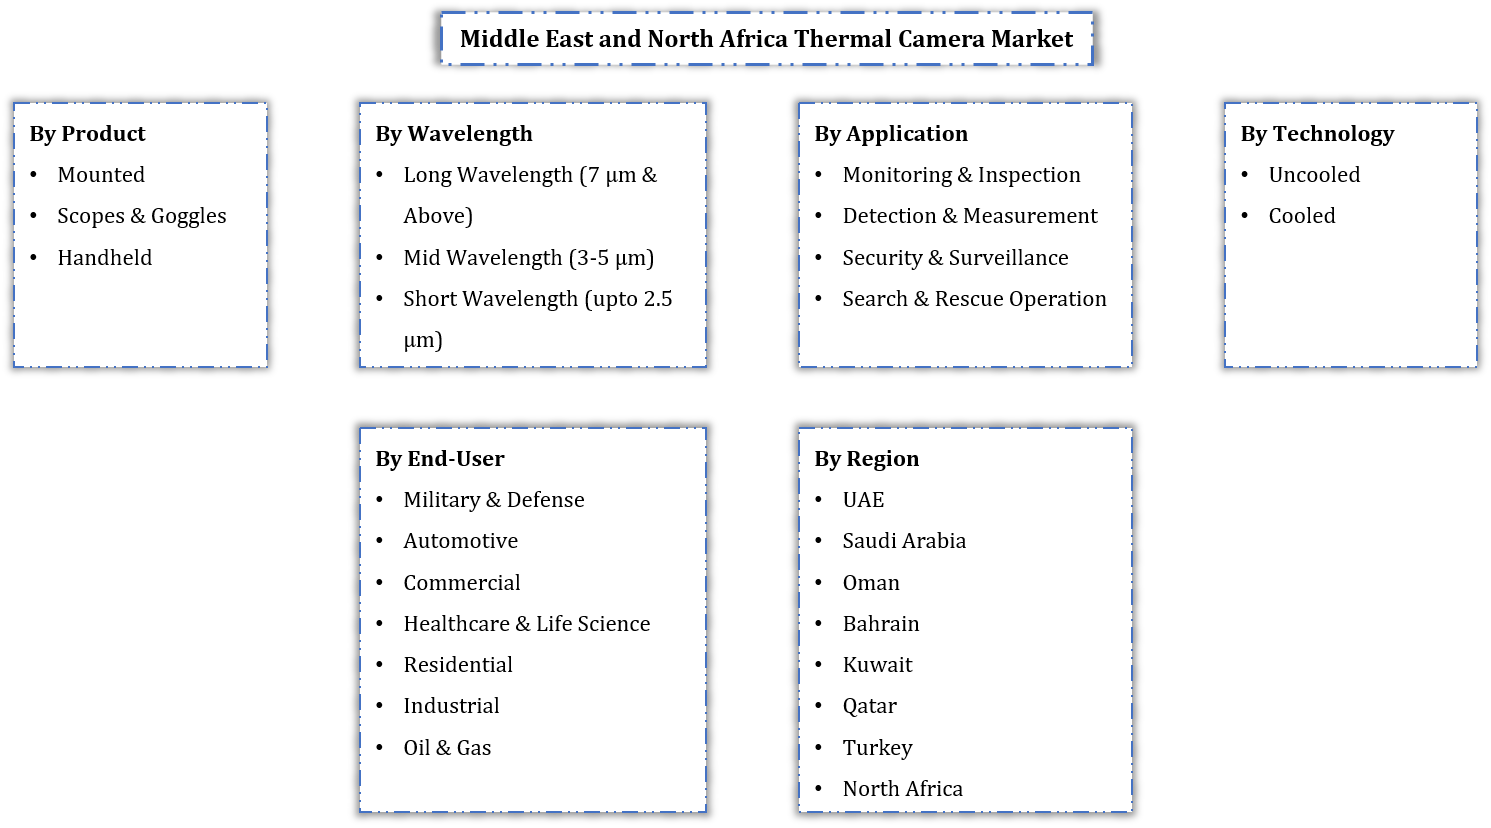 Middle East and North Africa Thermal Camera Market Segmentation